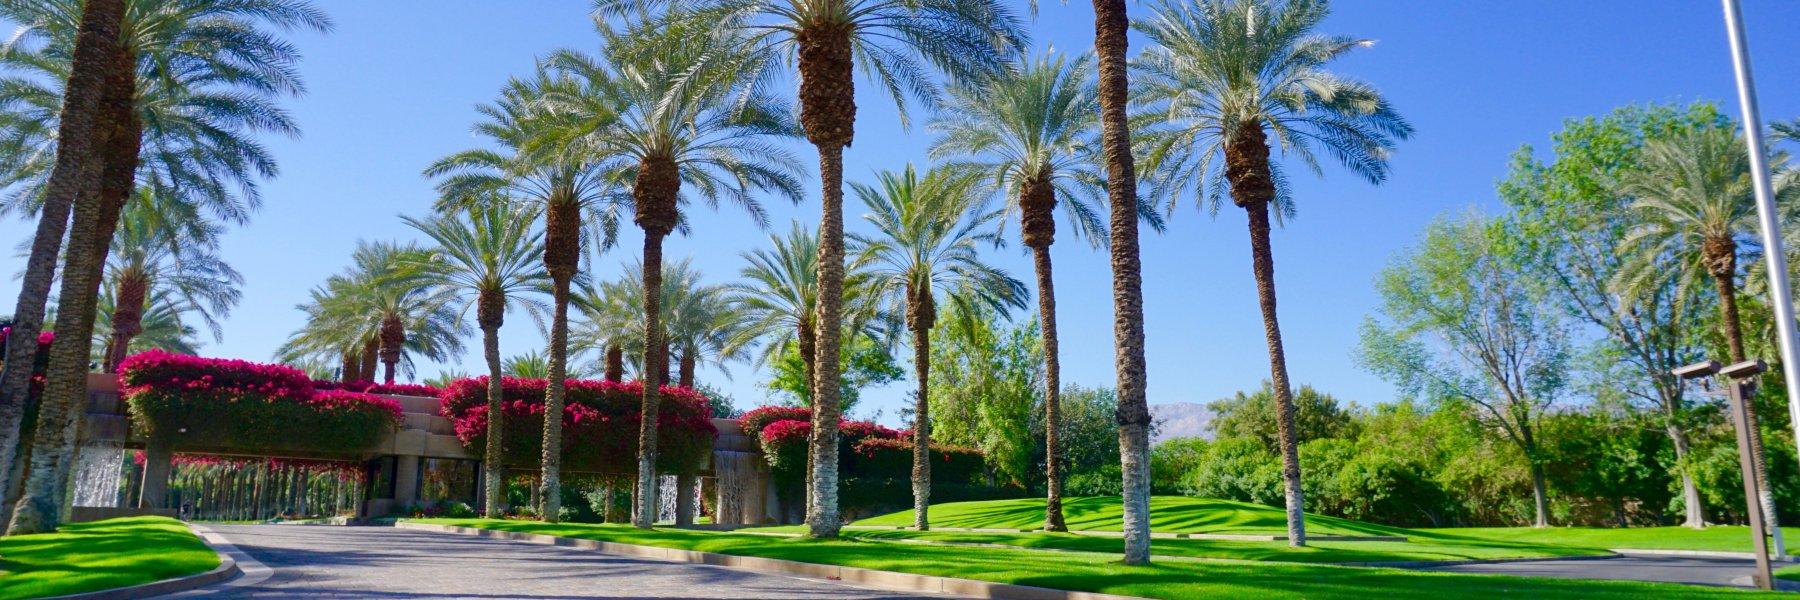 Vintage Country Club is a community of homes in Indian Wells, California